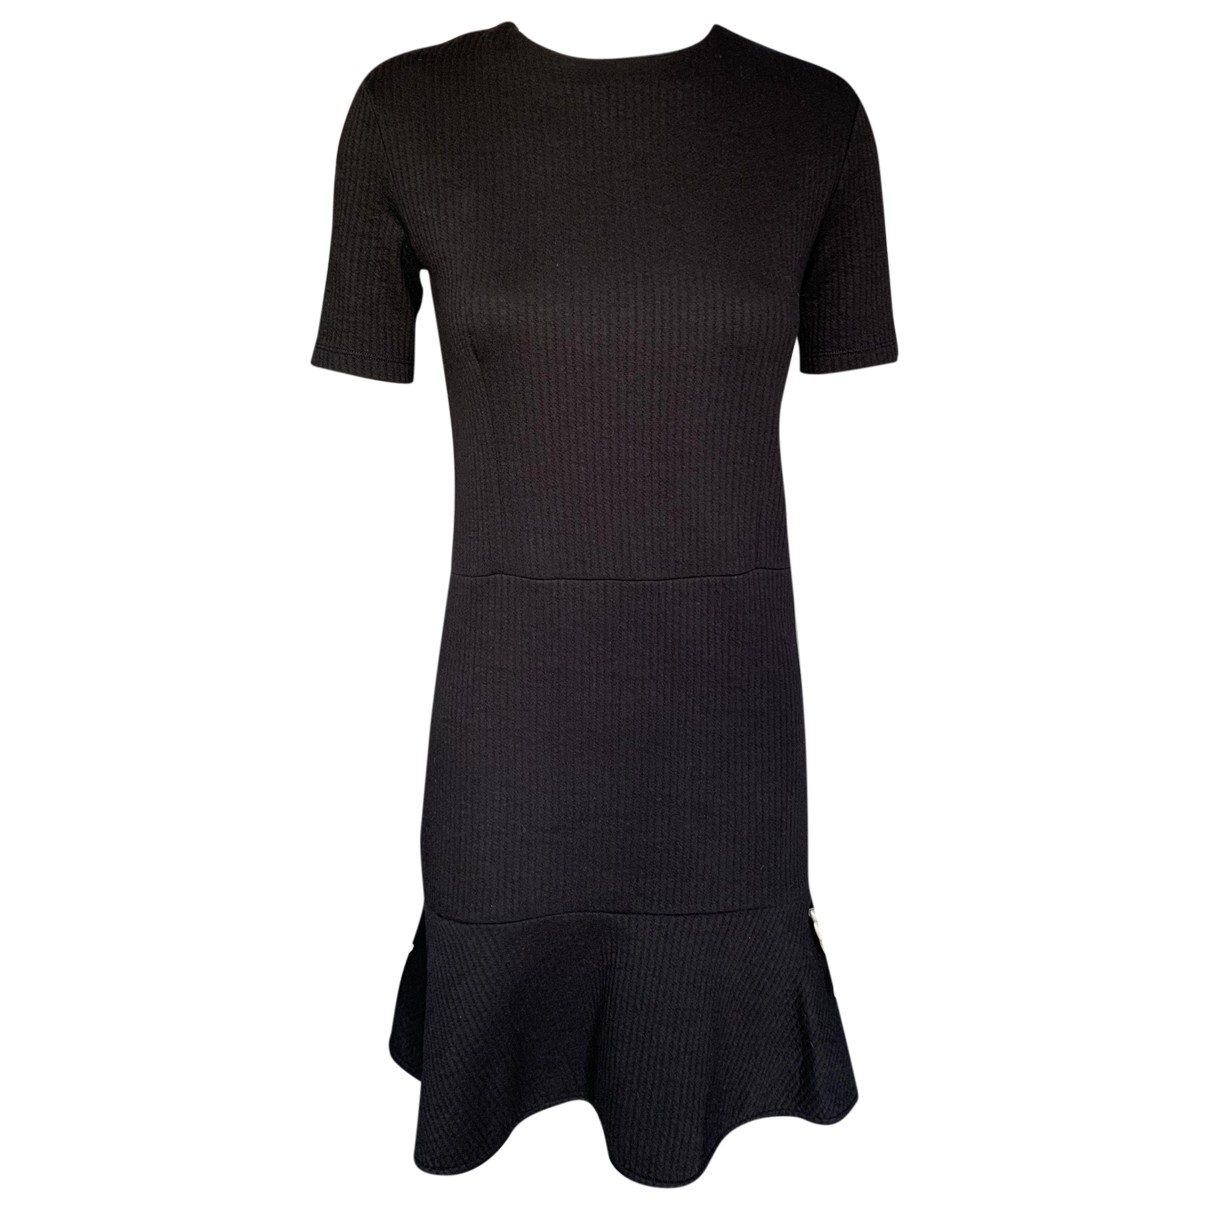 Carven \N Black Cotton dress for Women S International